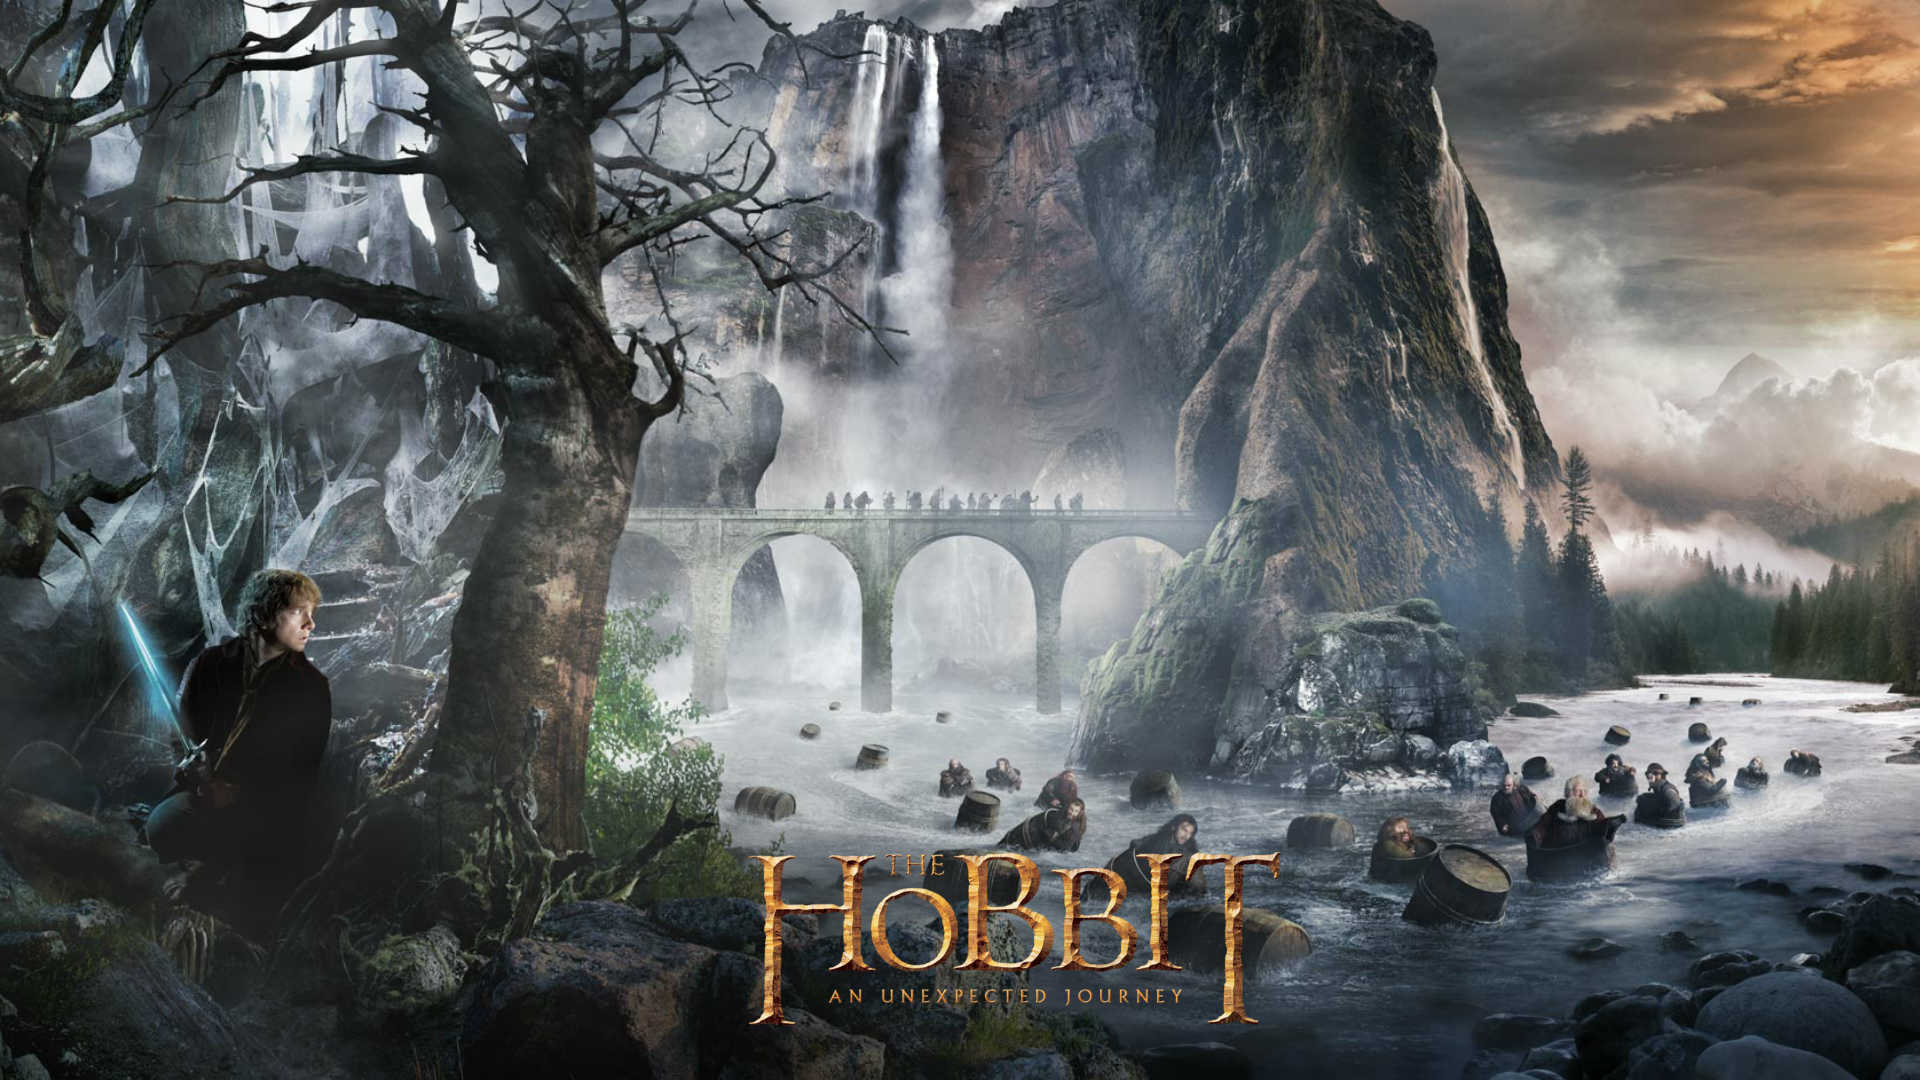 the hobbit images the hobbit wallpaper hd wallpaper and background